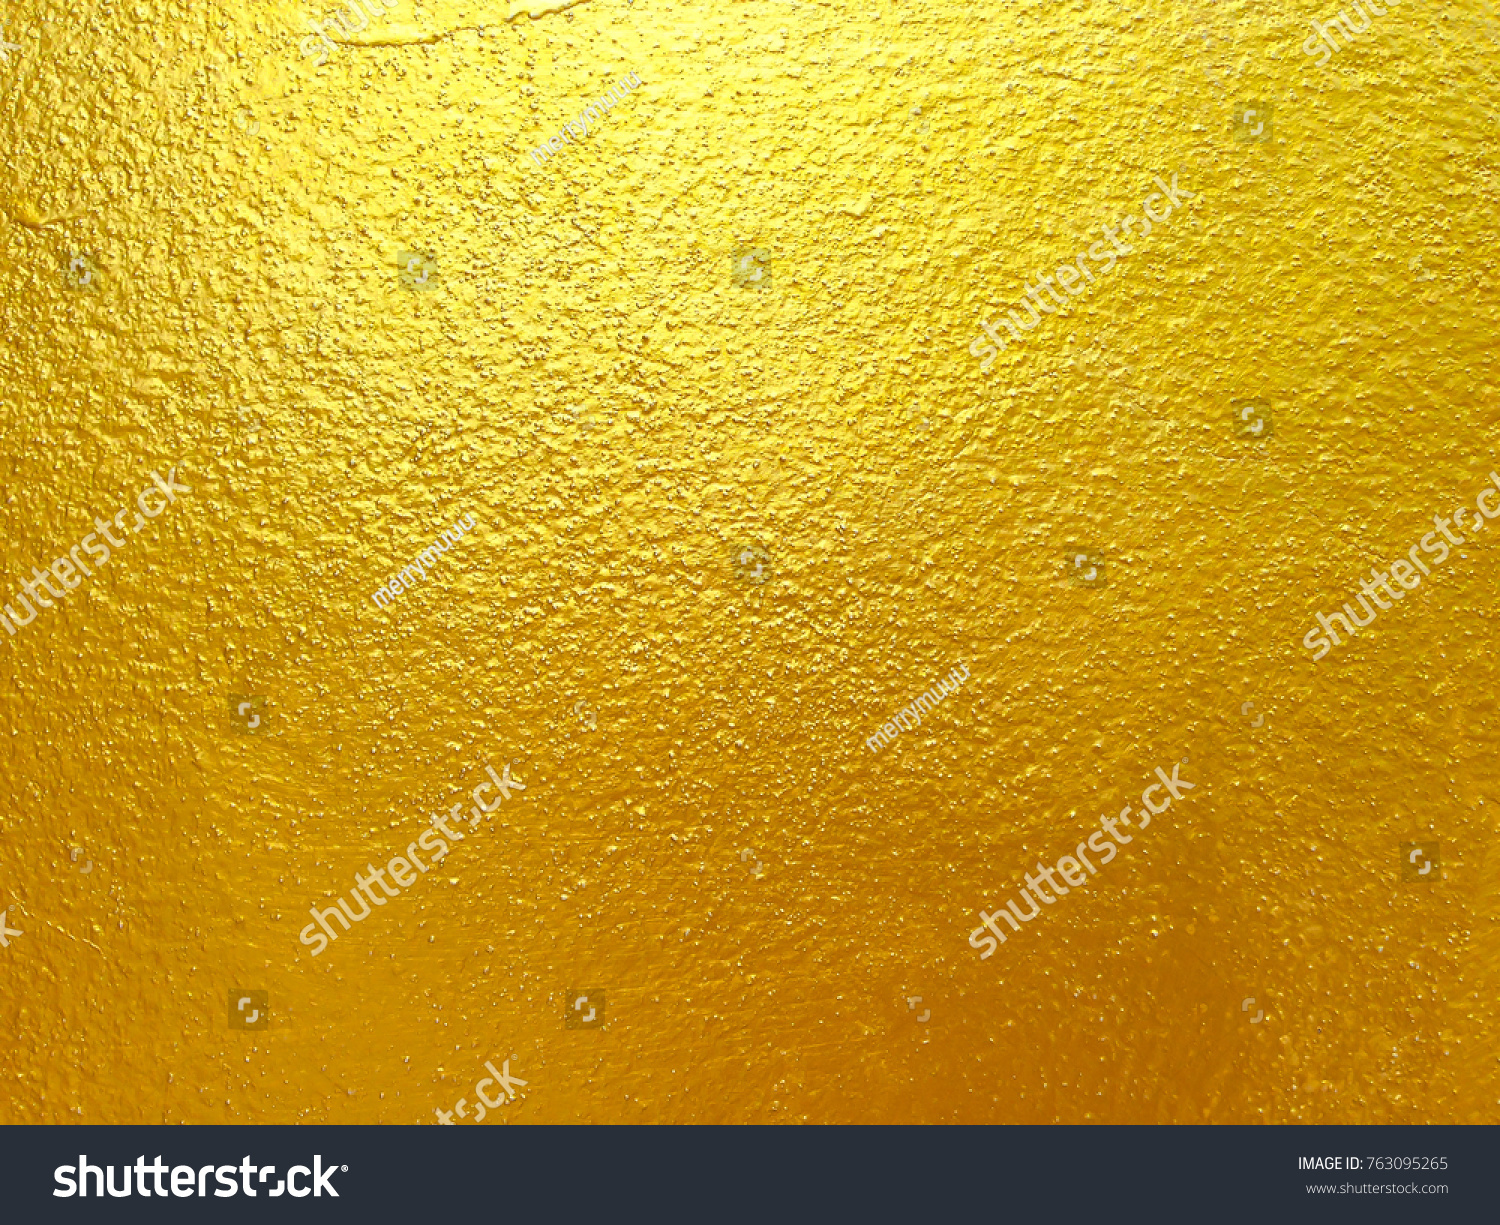 Gold concrete wall background and texture abstract | EZ Canvas